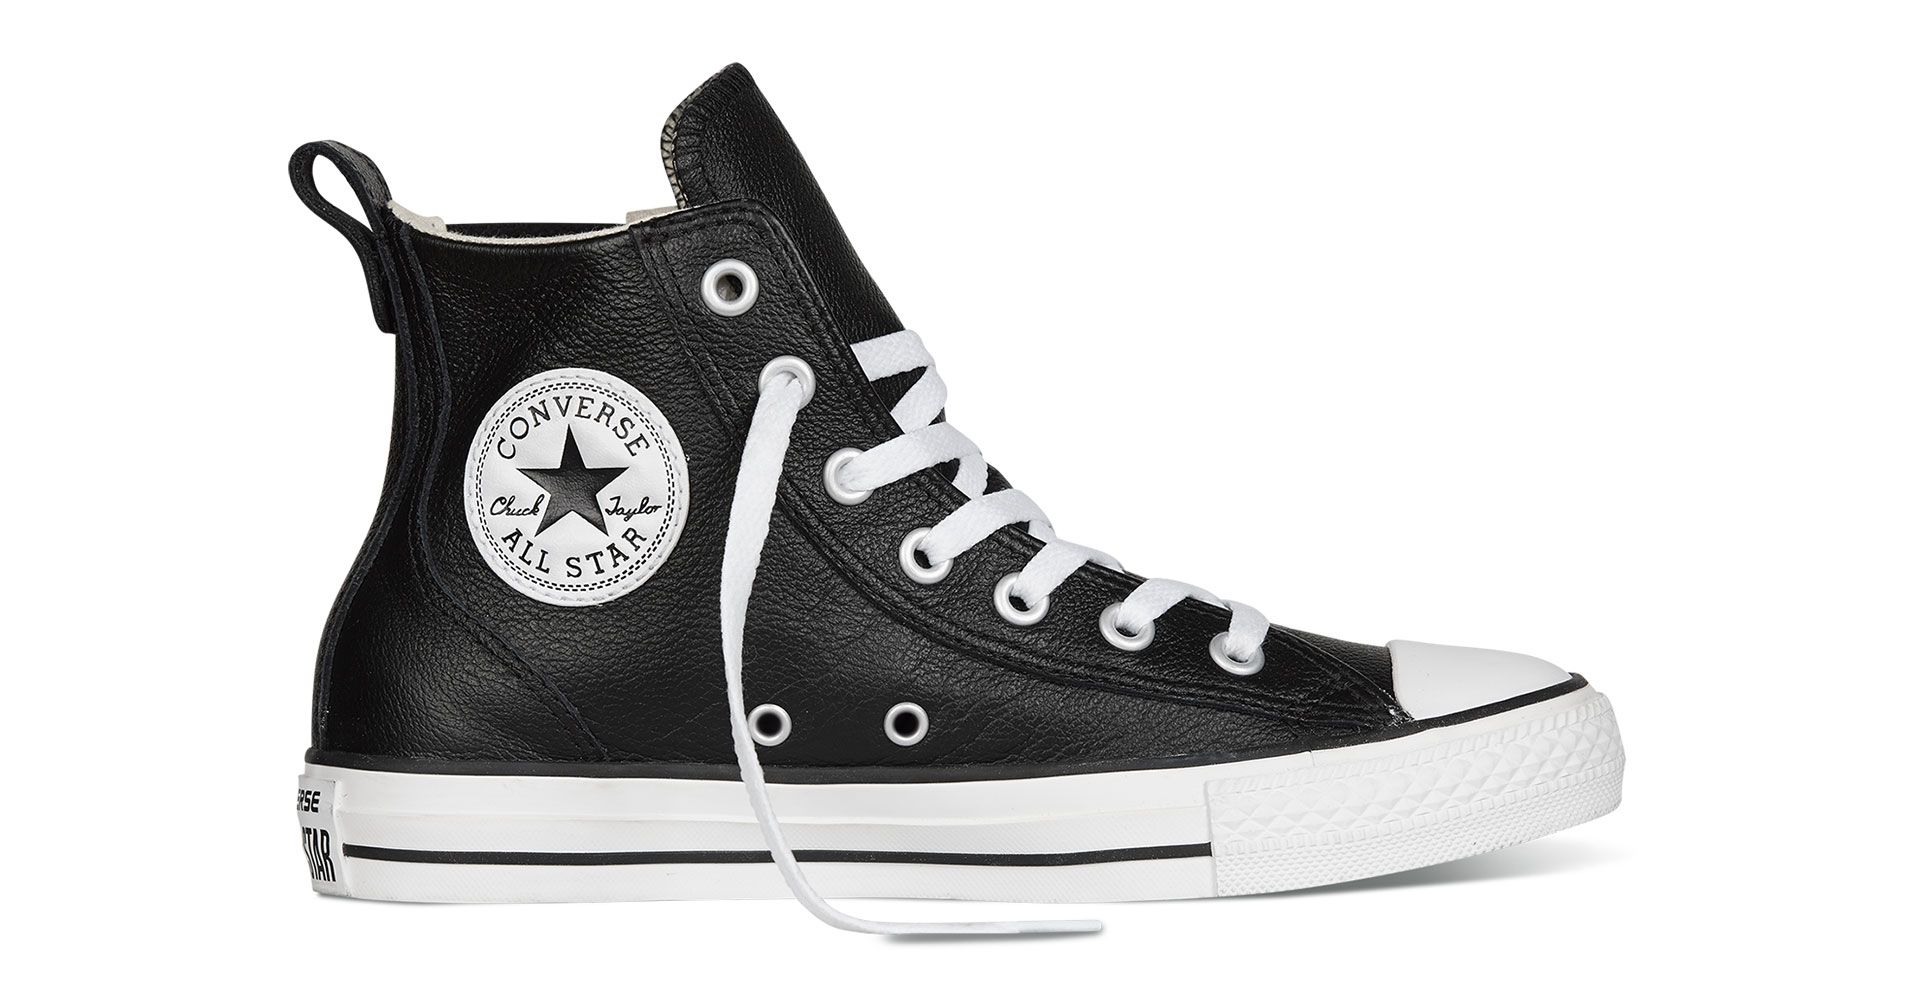 Chuck Taylor All Star Chelsee | Converse Singapore | Zapatos